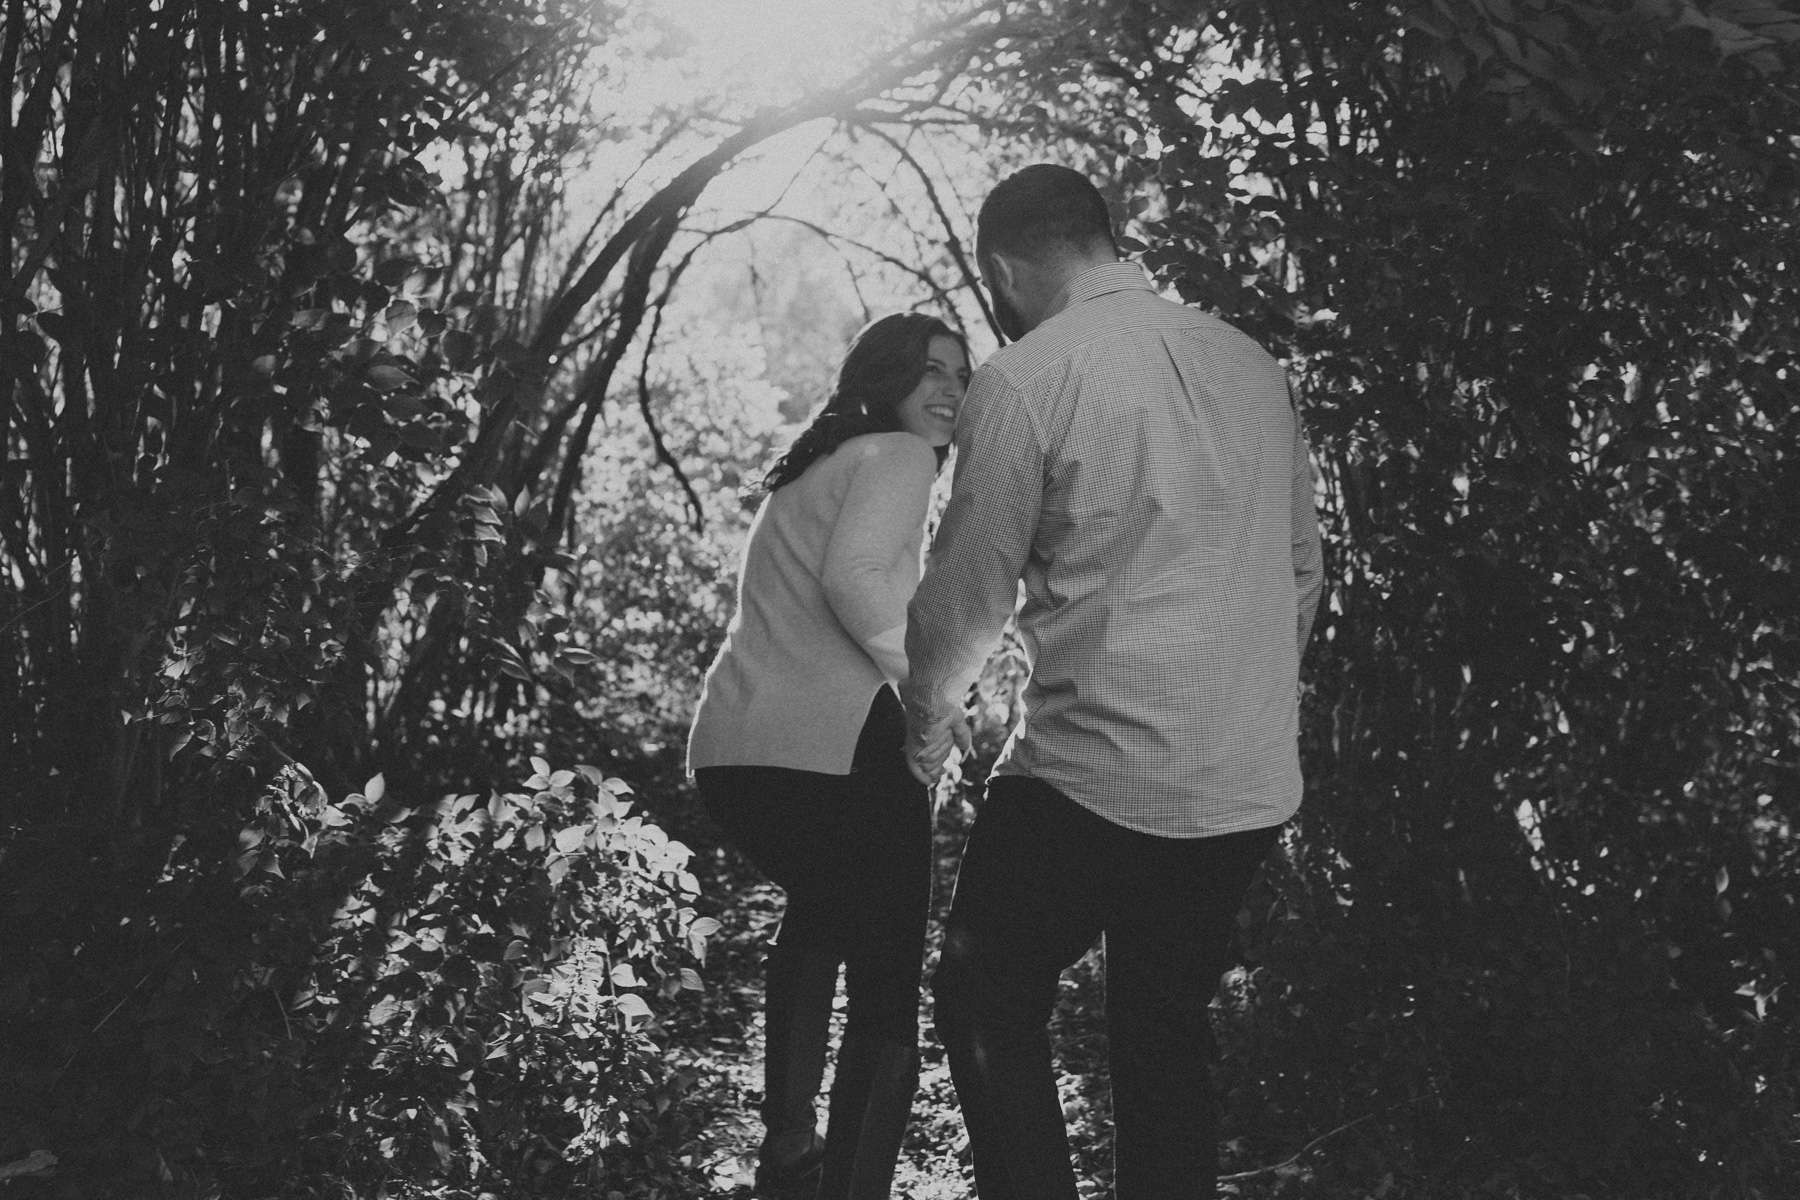 High-Park-Toronto-modern-engagement-photography-by-Sam-Wong-of-Artanis_Collective-Kristen-and-Jonathan_011.jpg